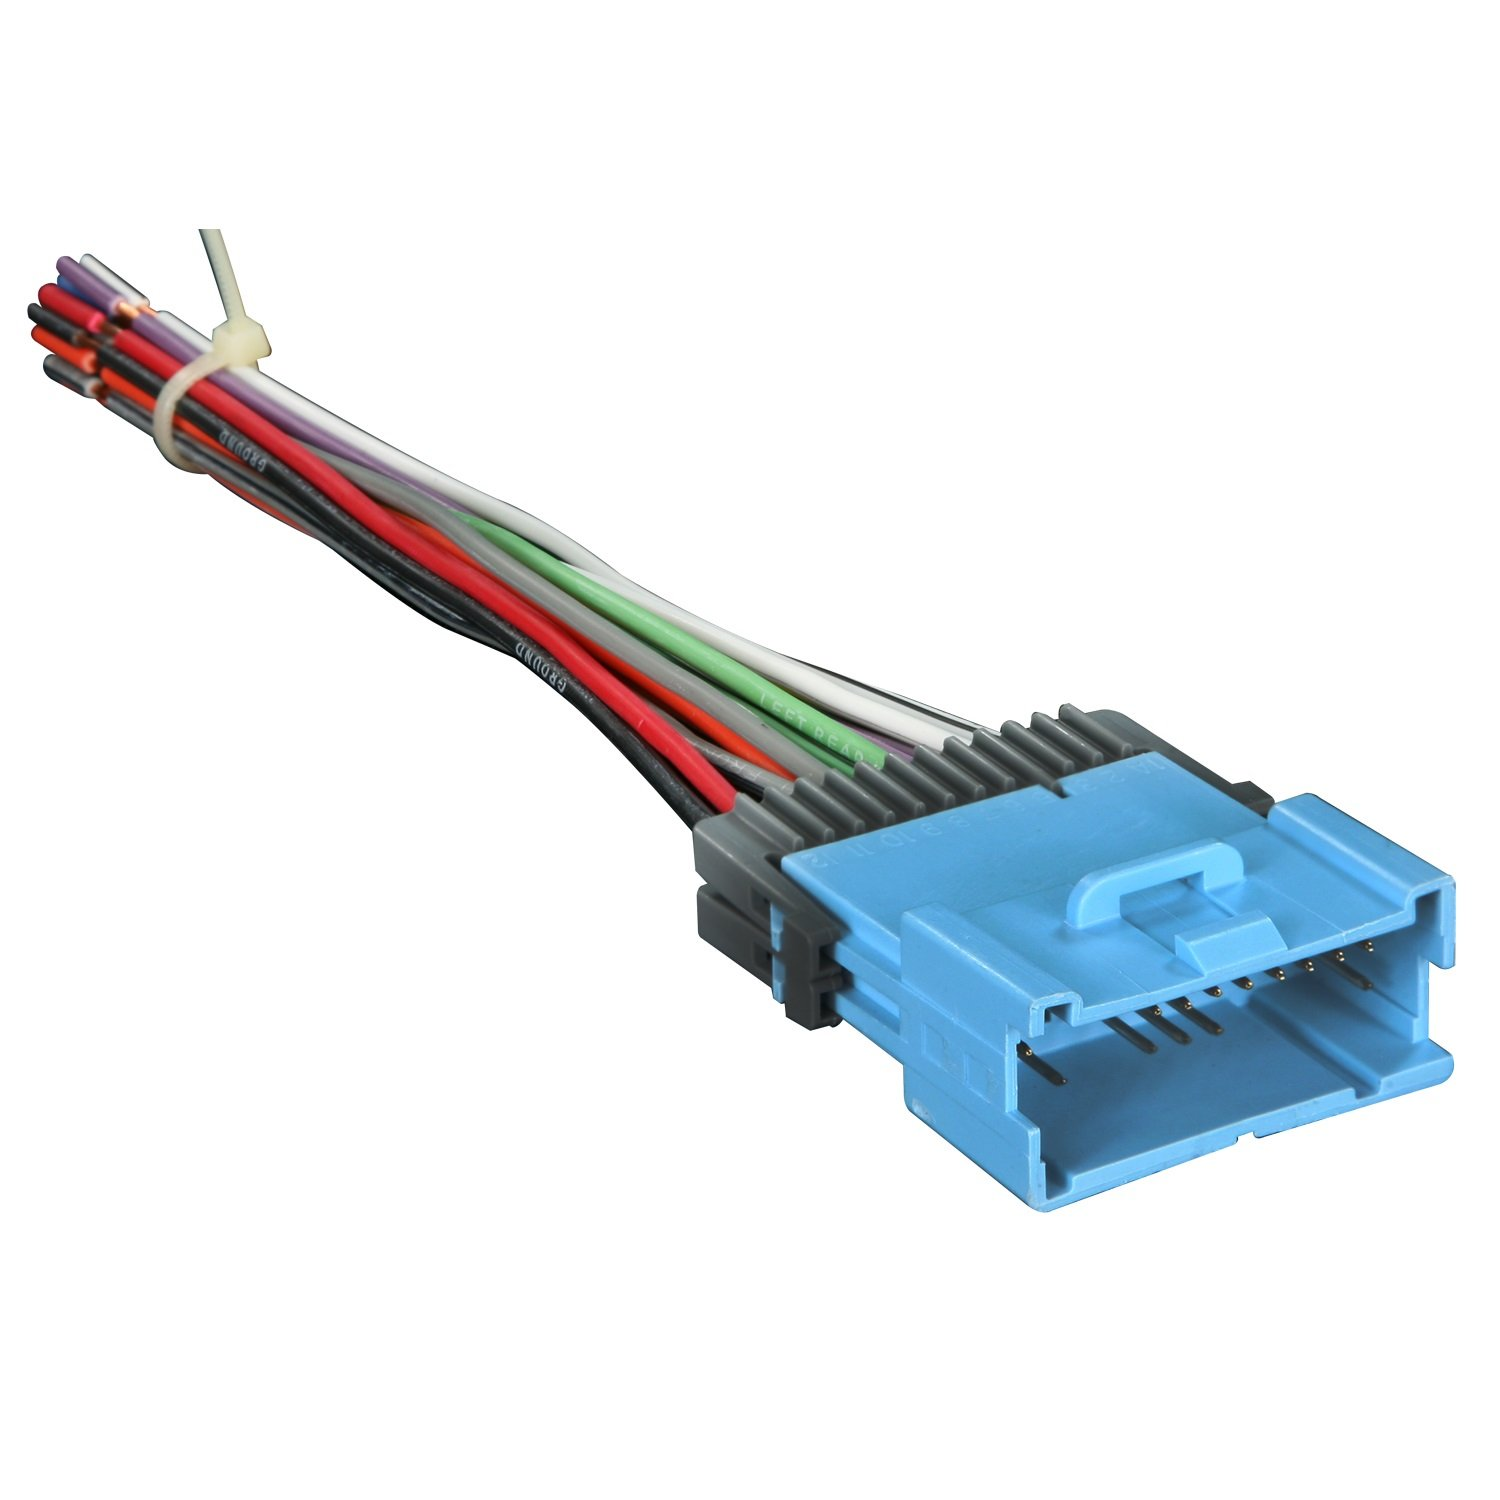 61ruWw 2aJL._SL1500_ amazon com metra 70 2102 radio wiring harness for gm 04 05 car GM Wiring Color Codes at bakdesigns.co